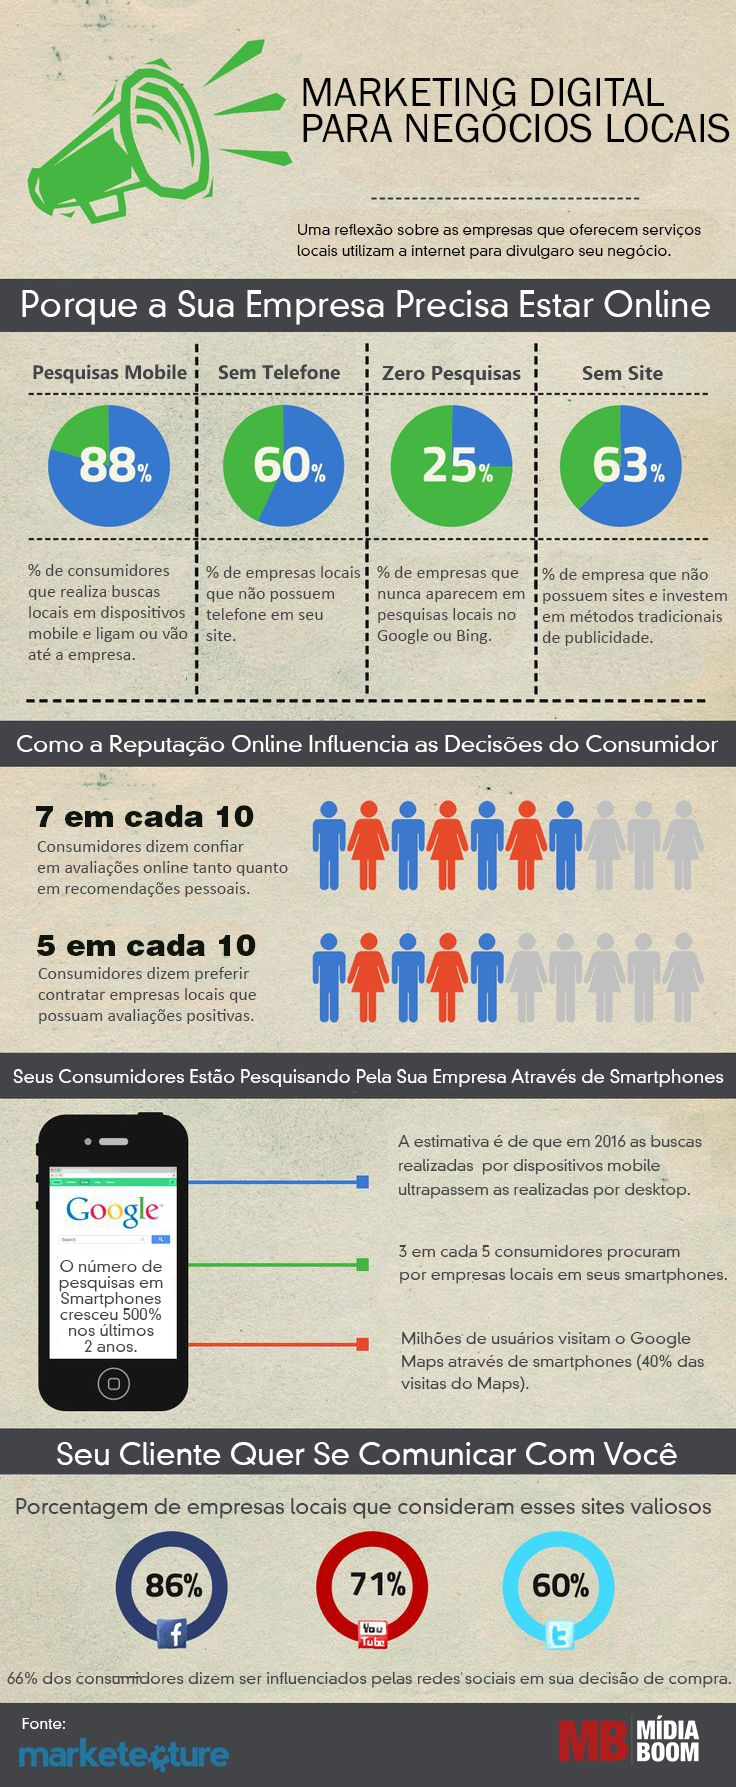 infografico-marketing-digital-para-buscas-locais #marketingdigital #infograficos #brasil #modernistablog